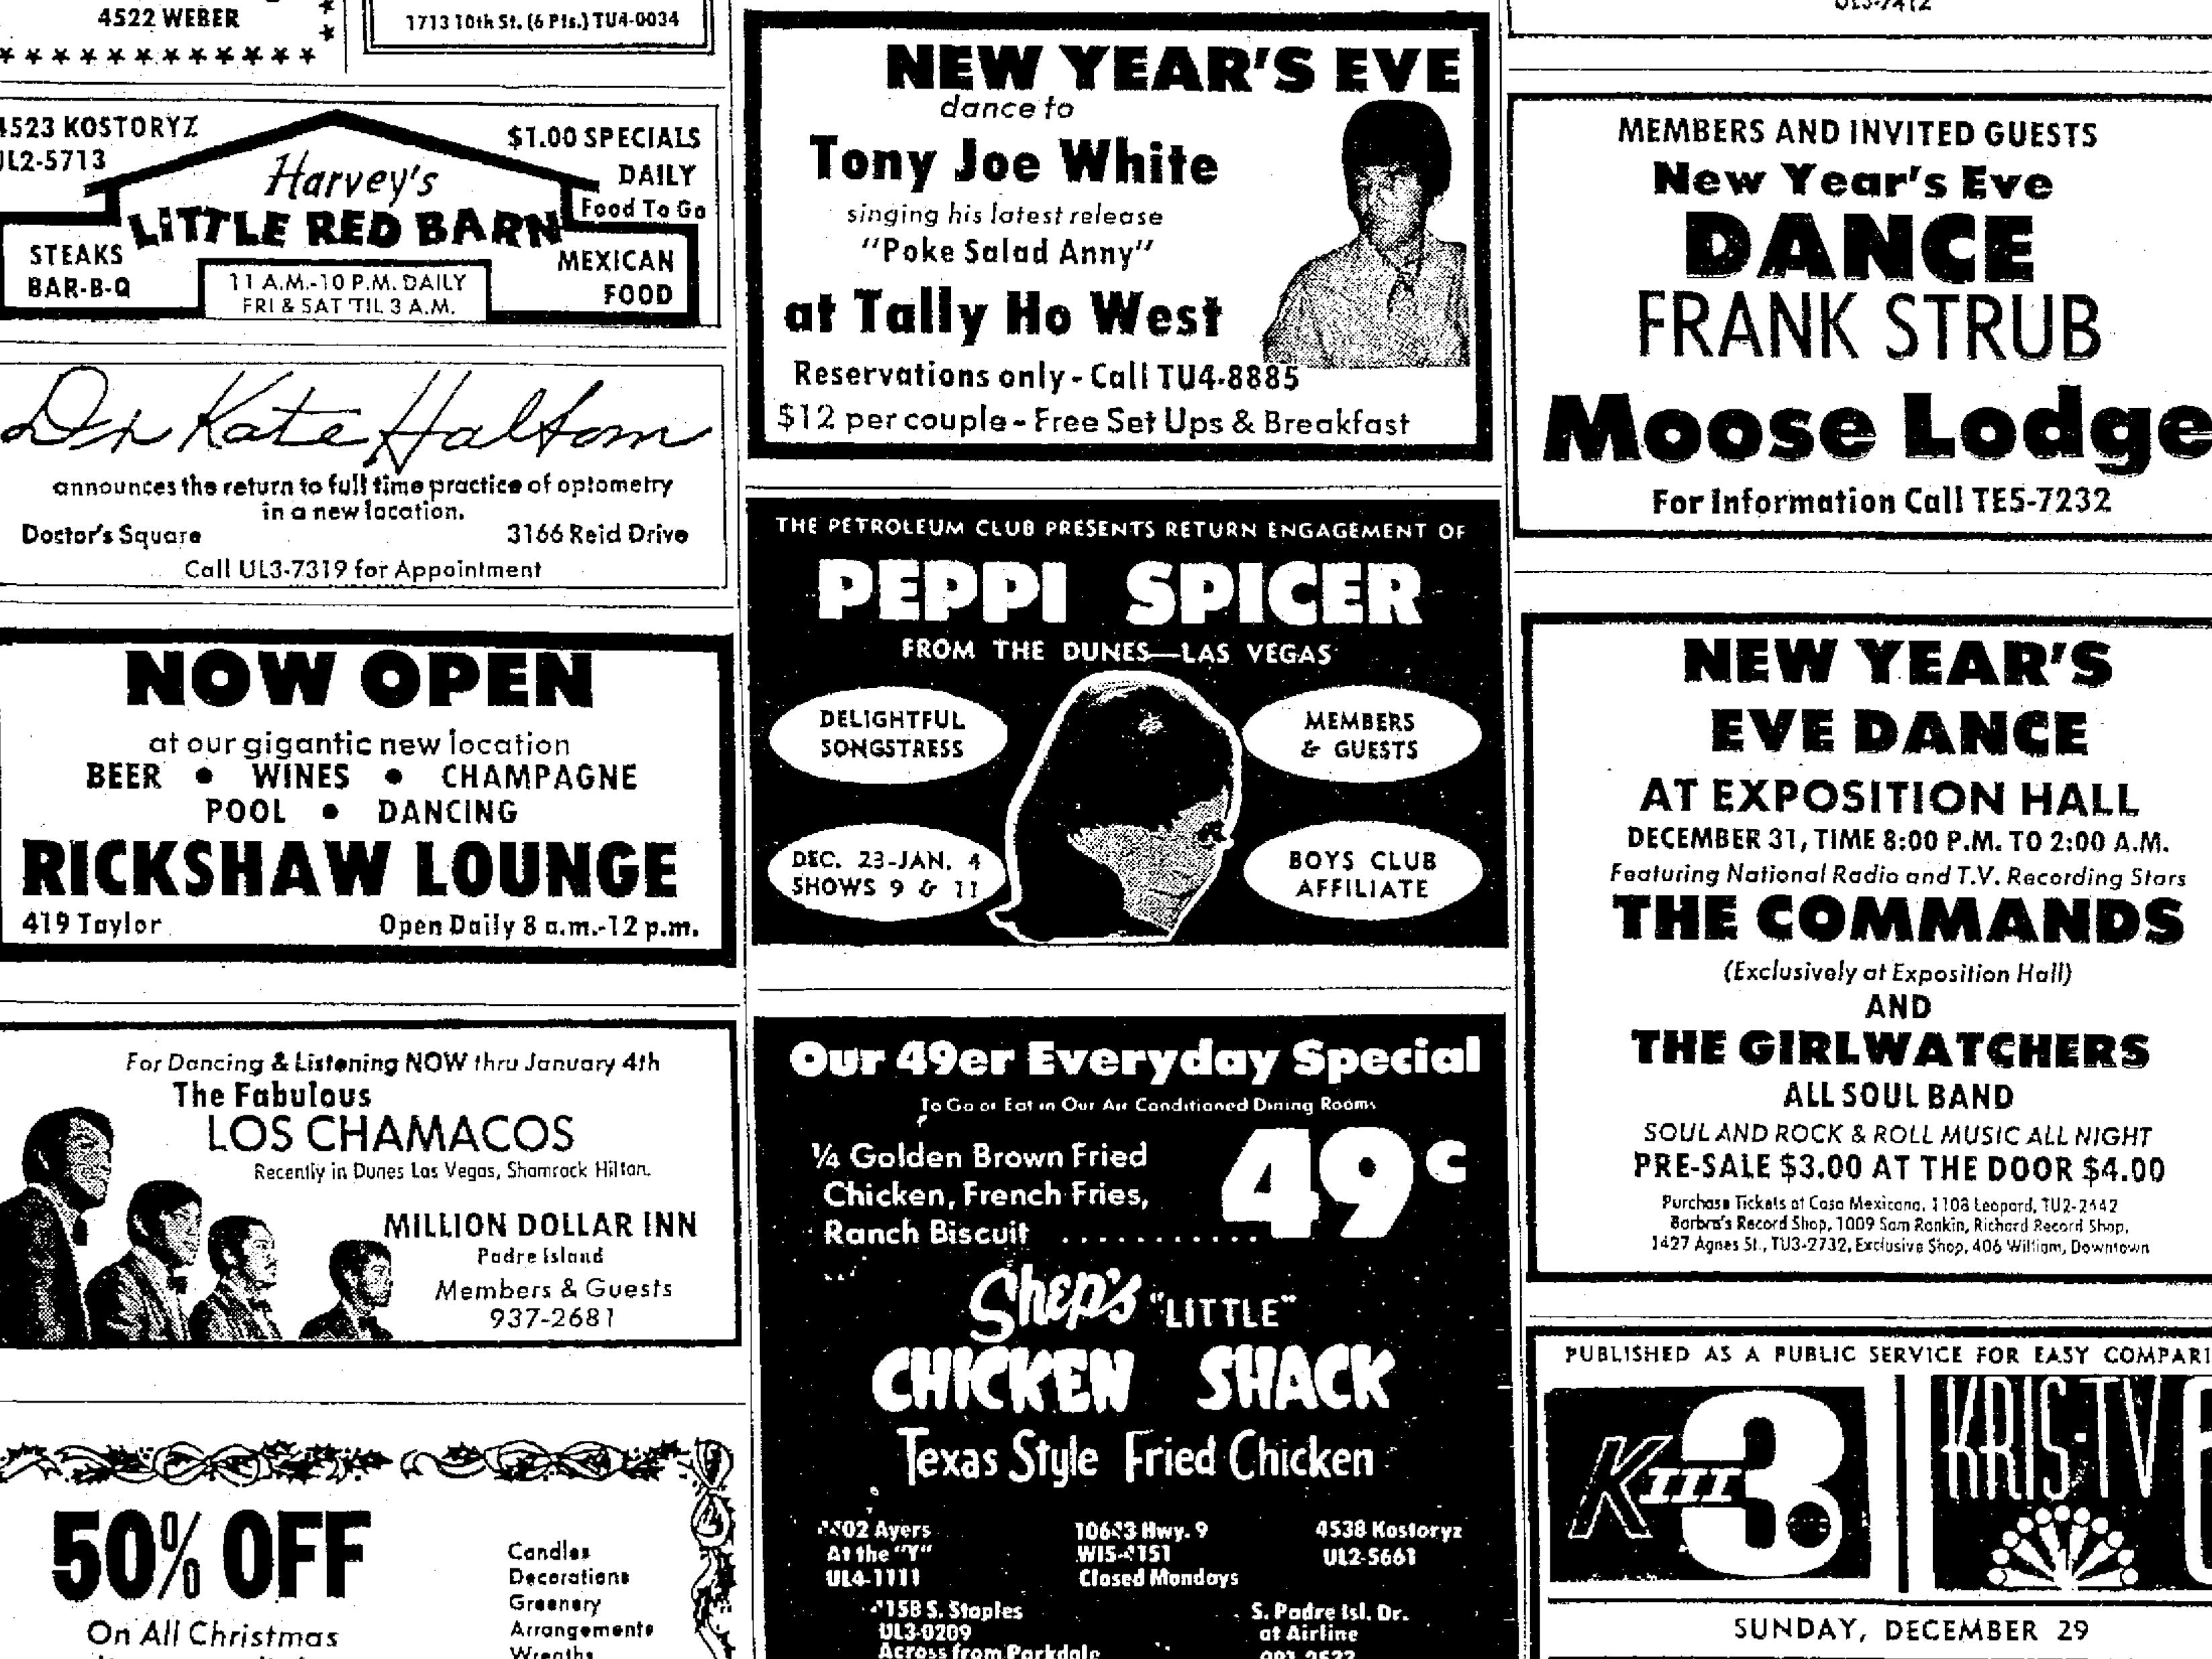 Swamp rock musician Tony Joe White performed a New Year's Eve Show at the Tally Ho West in Corpus Christi in 1968. White lived in Corpus Christi for several years in the late 1960s.